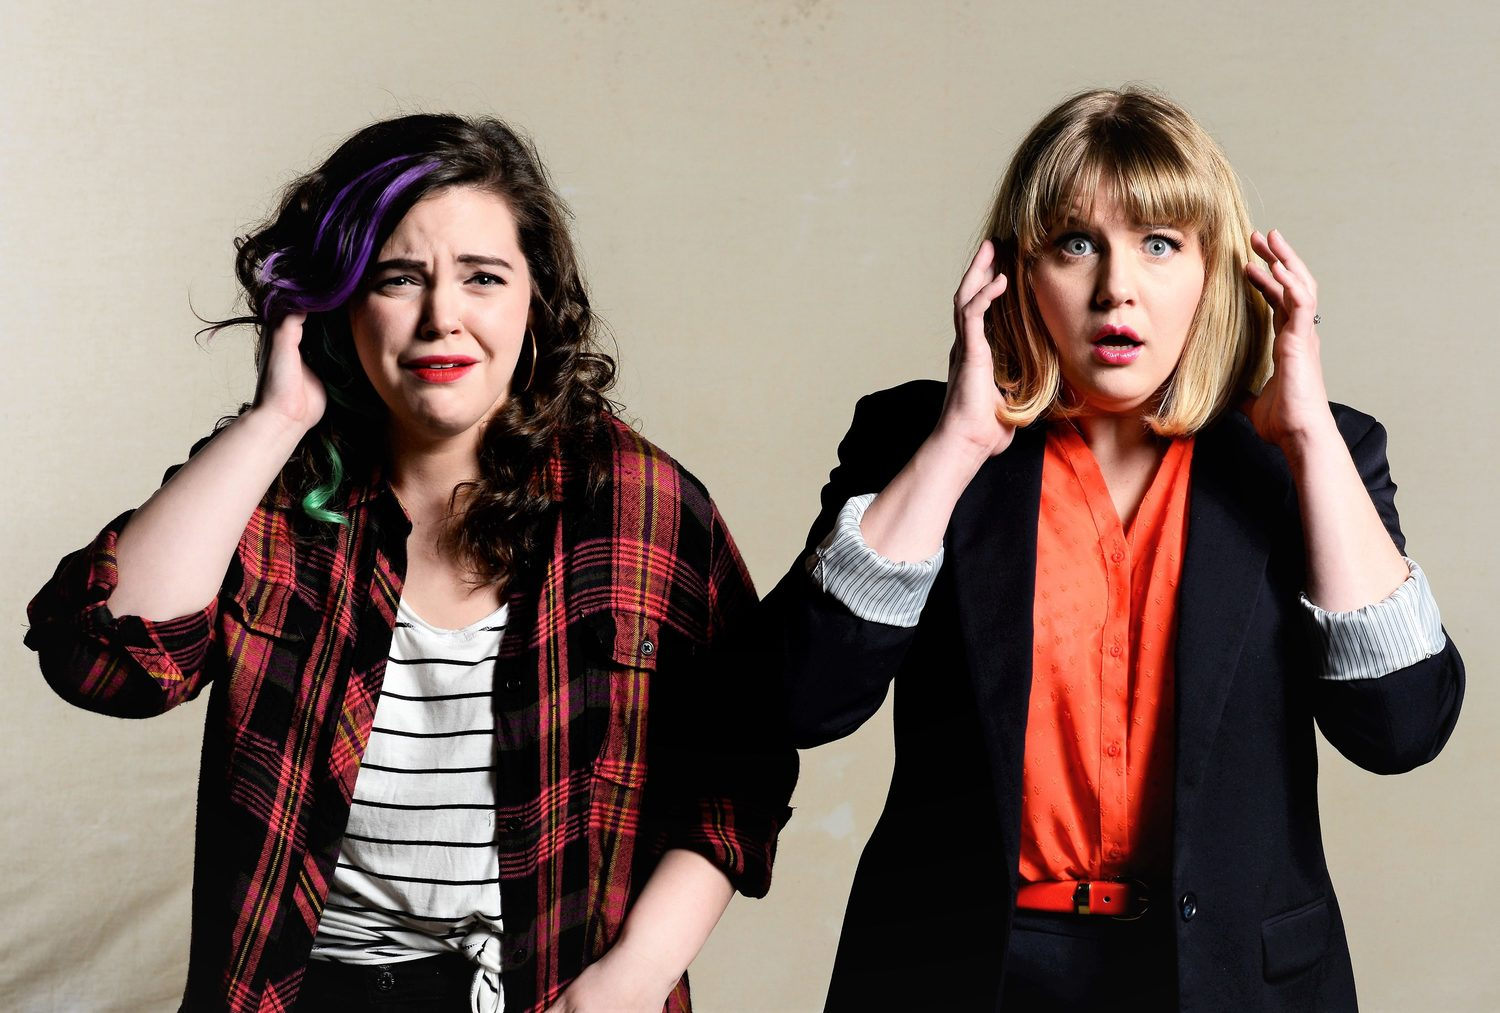 BWW Interview: Jennifer Alice Acker and Abby Holland Get Their Freak On in FREAKY FRIDAY at Horizon Theatre